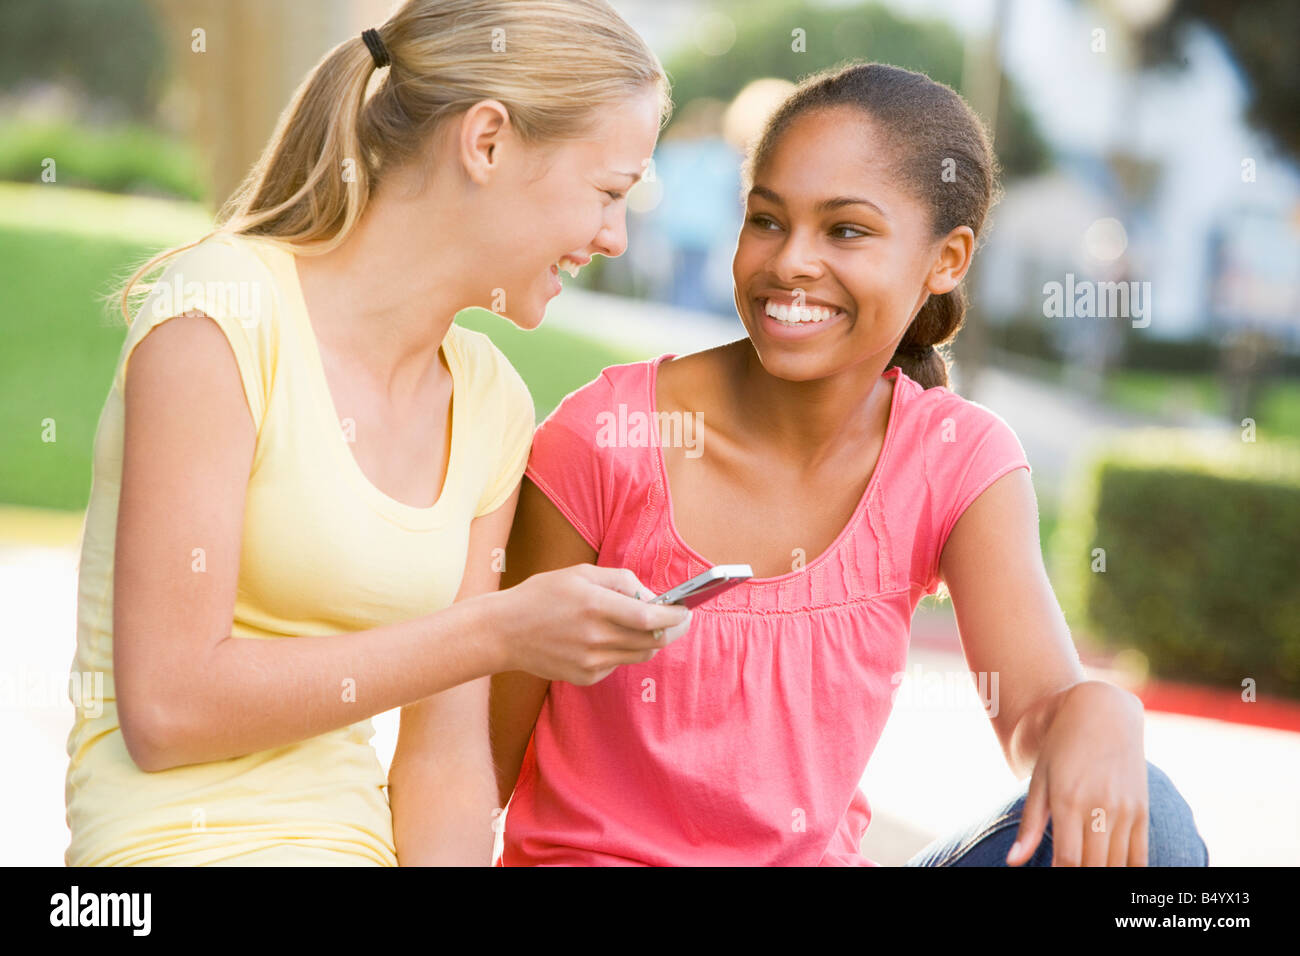 Teenage Girls Sitting Outside Playing With Mobile Phone Stock Photo